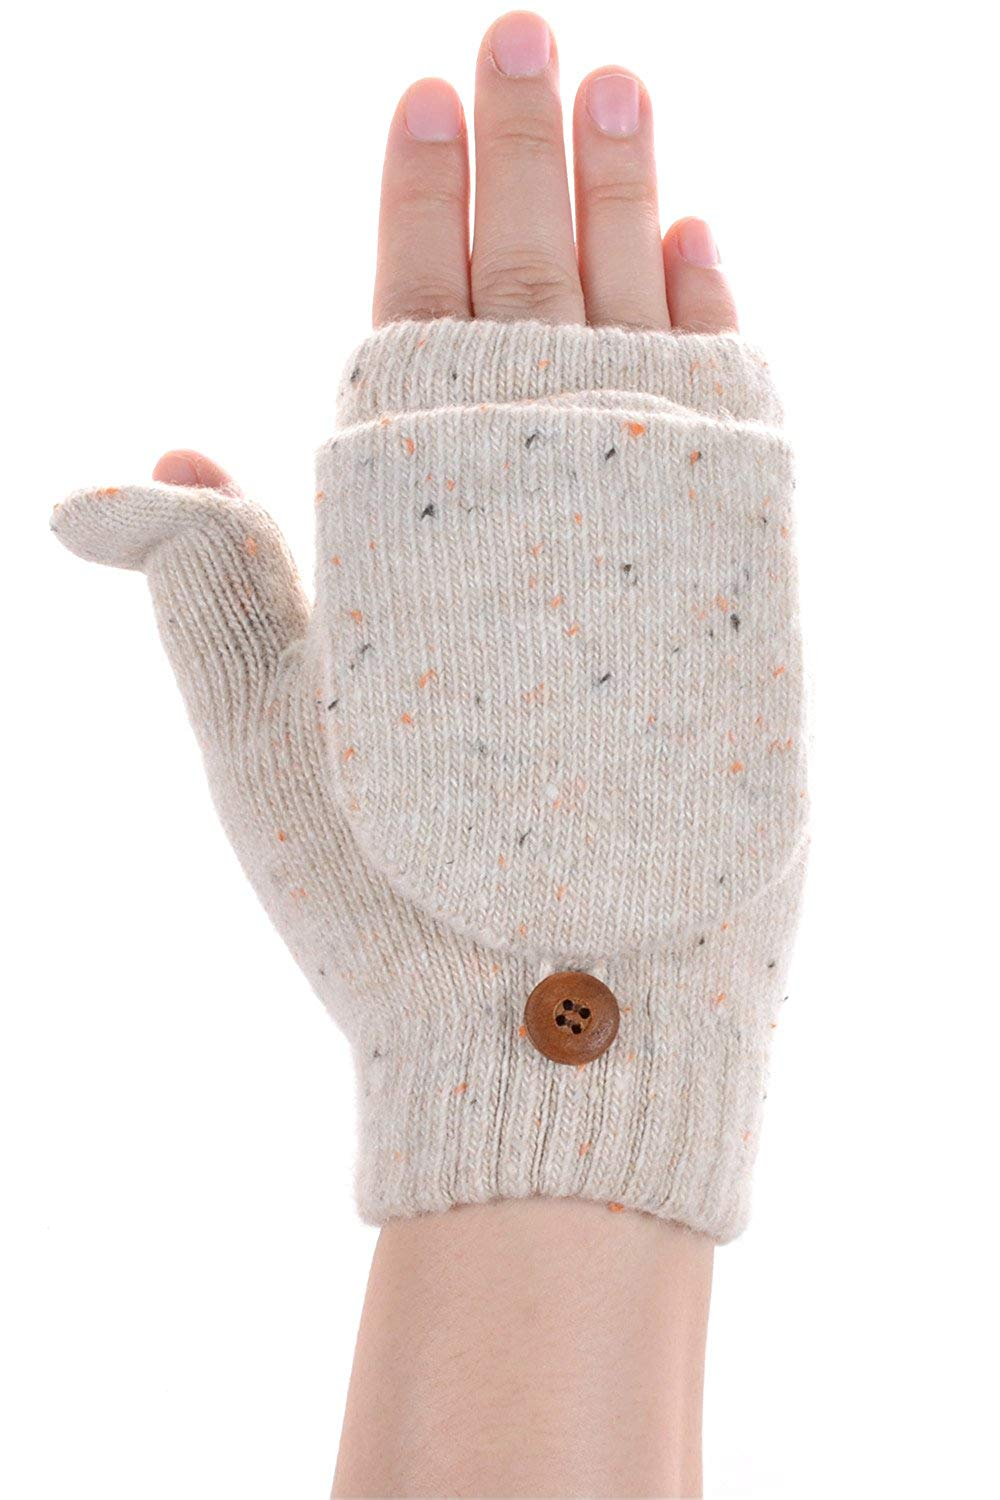 WindGoal Cute Boys Girls Kids Winter Knitted Warm Whole Covered Finger Mittens Gloves